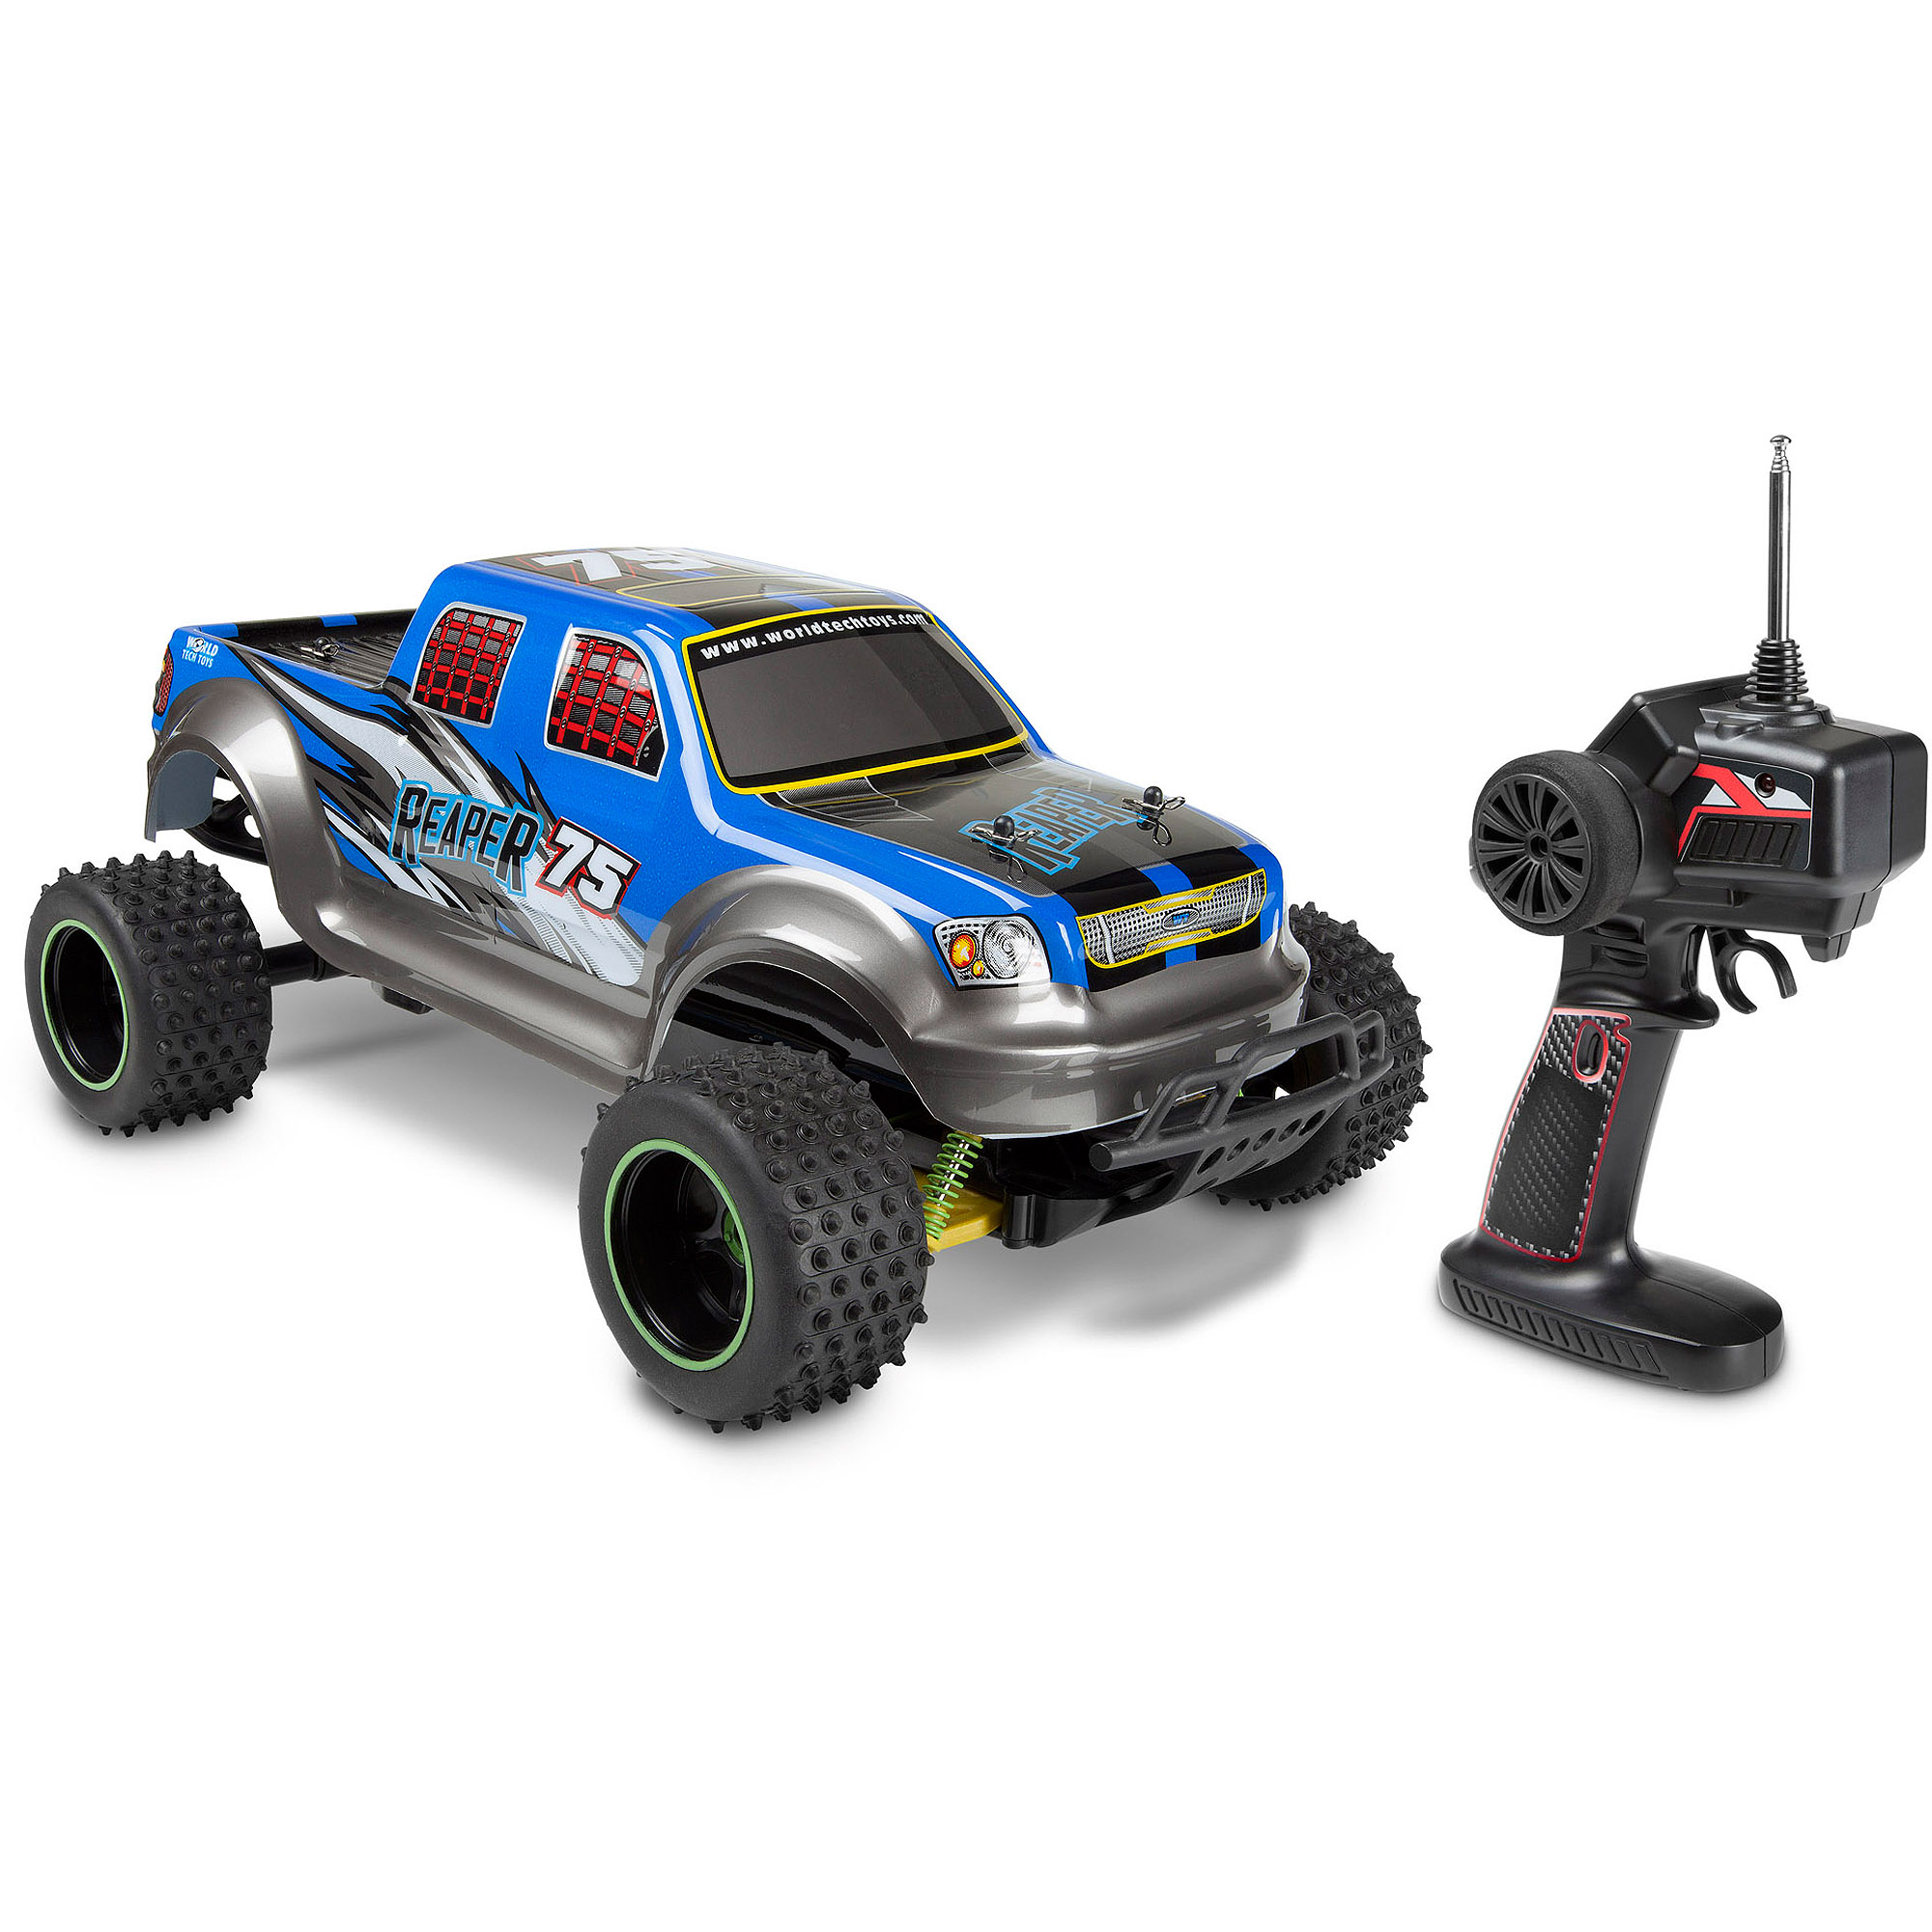 World Tech Toys 1:12 Reaper Electric RC Truck